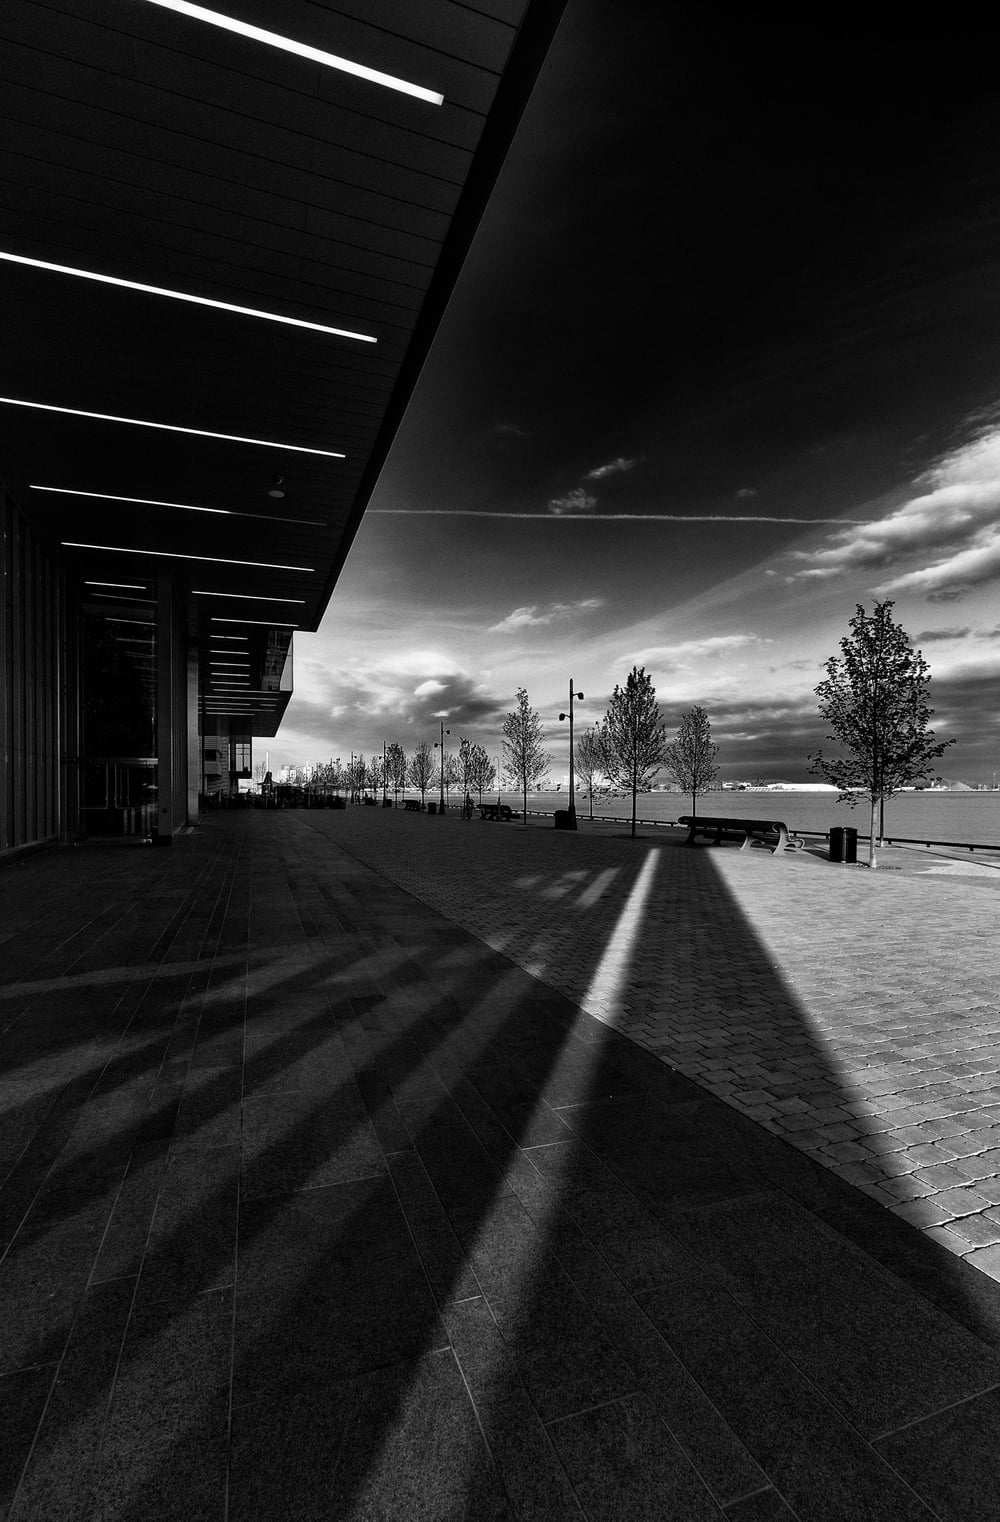 sugar-beach_corus_sidewalk_ceiling_shadows_bw_01.jpg